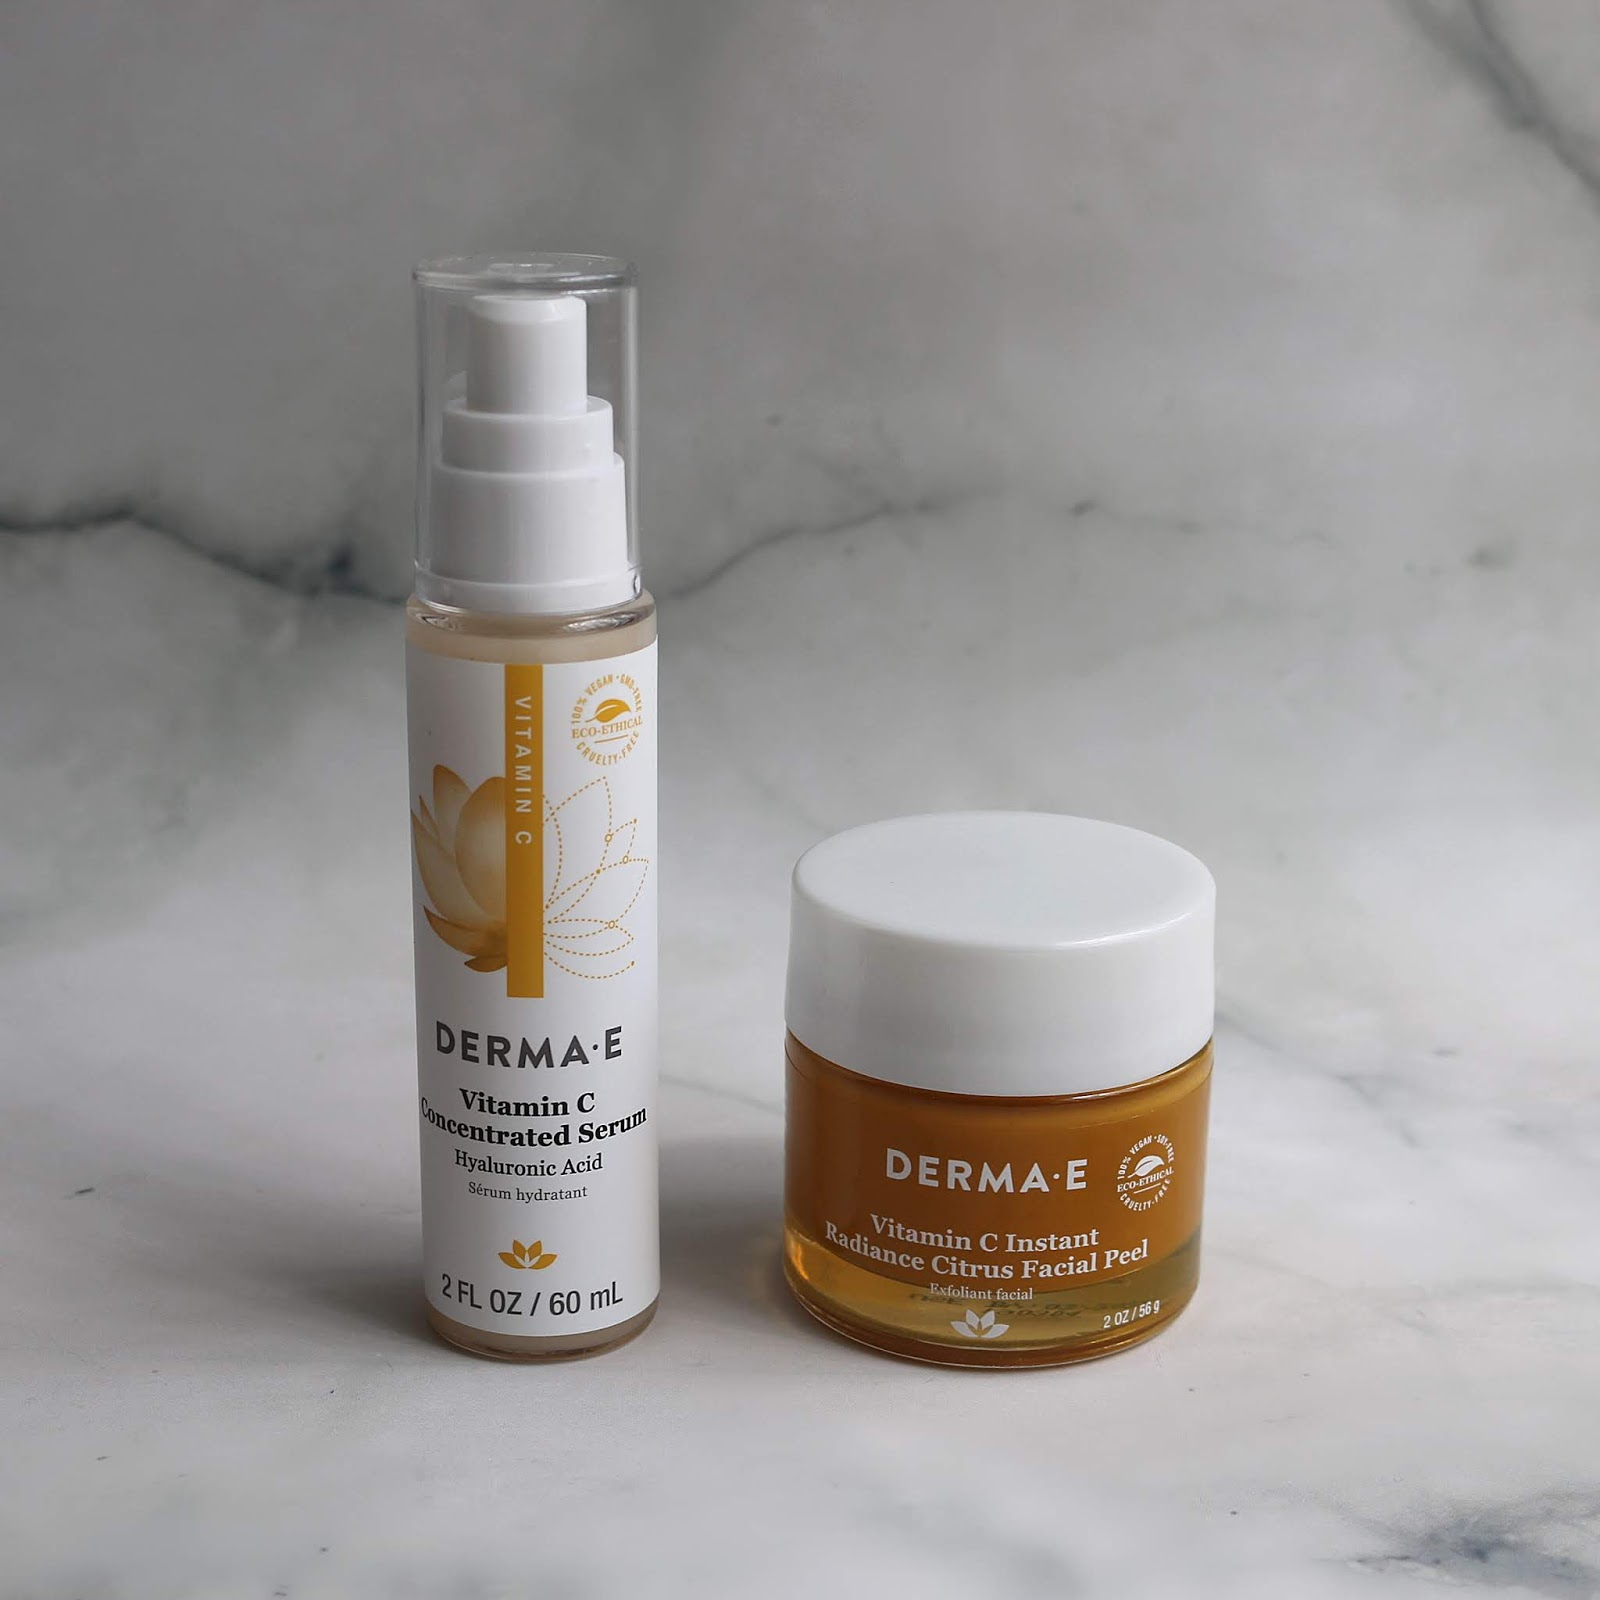 DERMA E Vitamin C Concentrated Serum & Instant Radiance Citrus Facial Peel Review